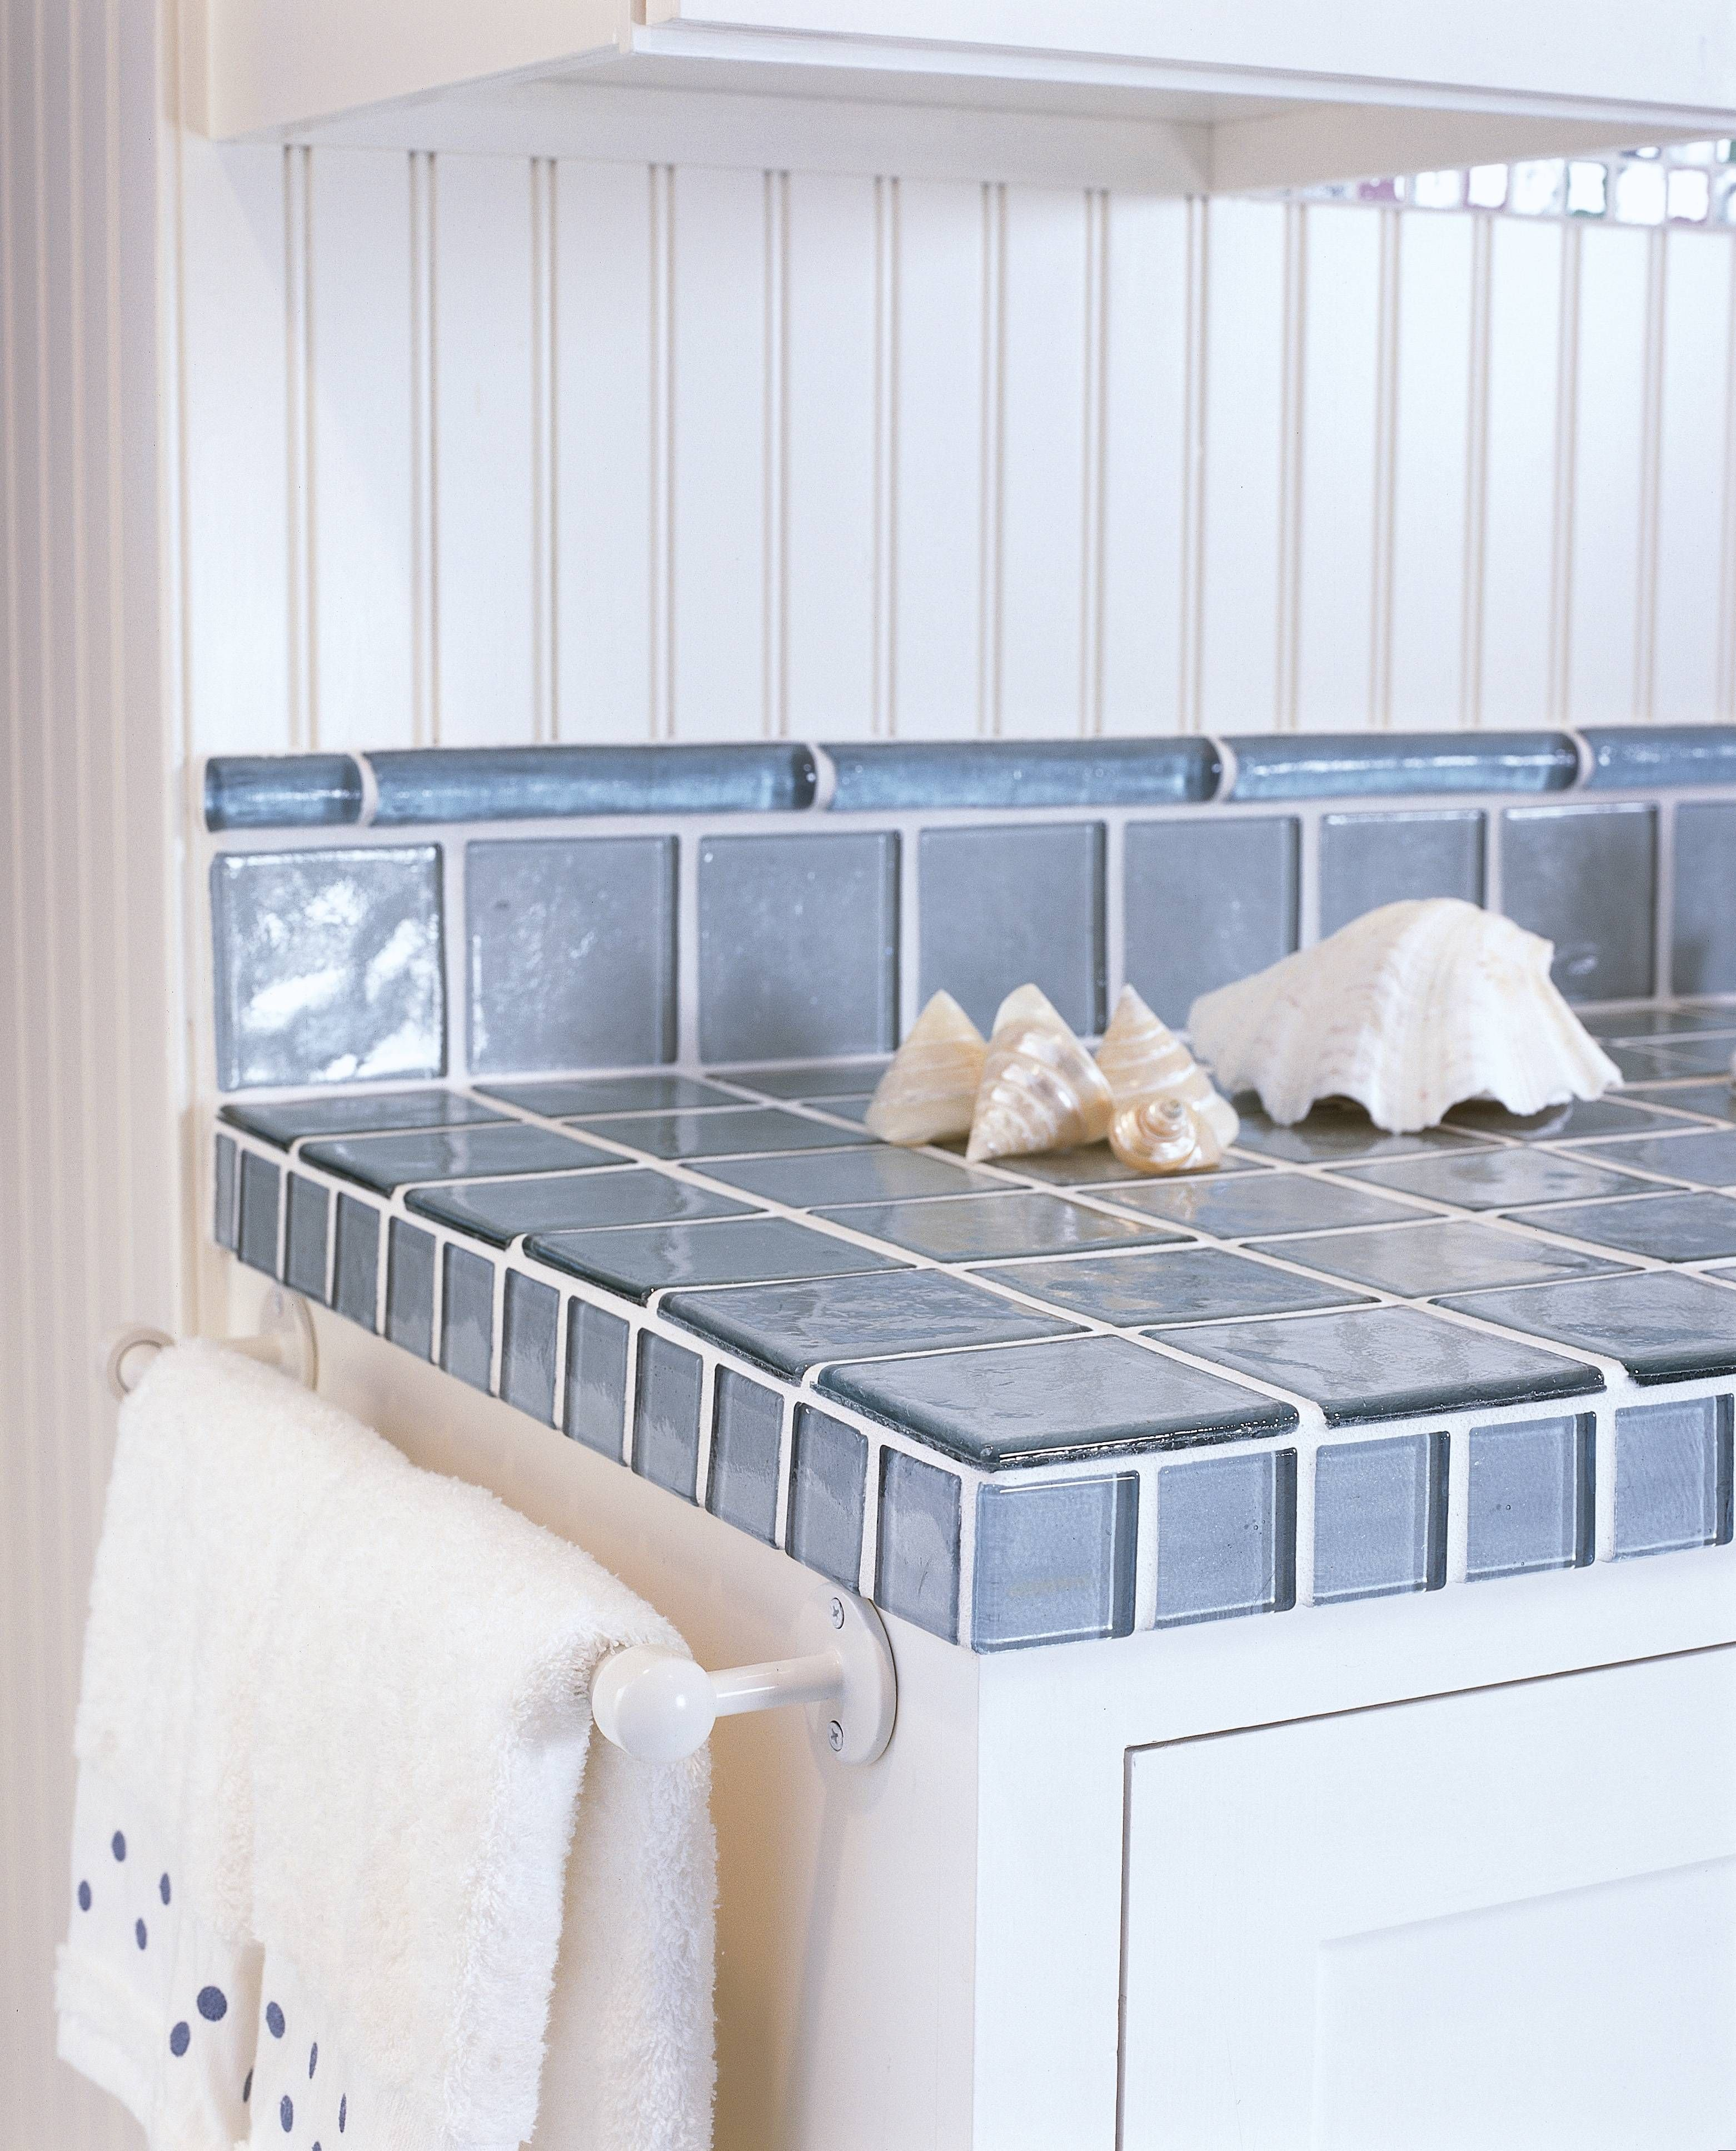 kitchen countertop tile Image Gallery of Recycled Glass Tile Counters